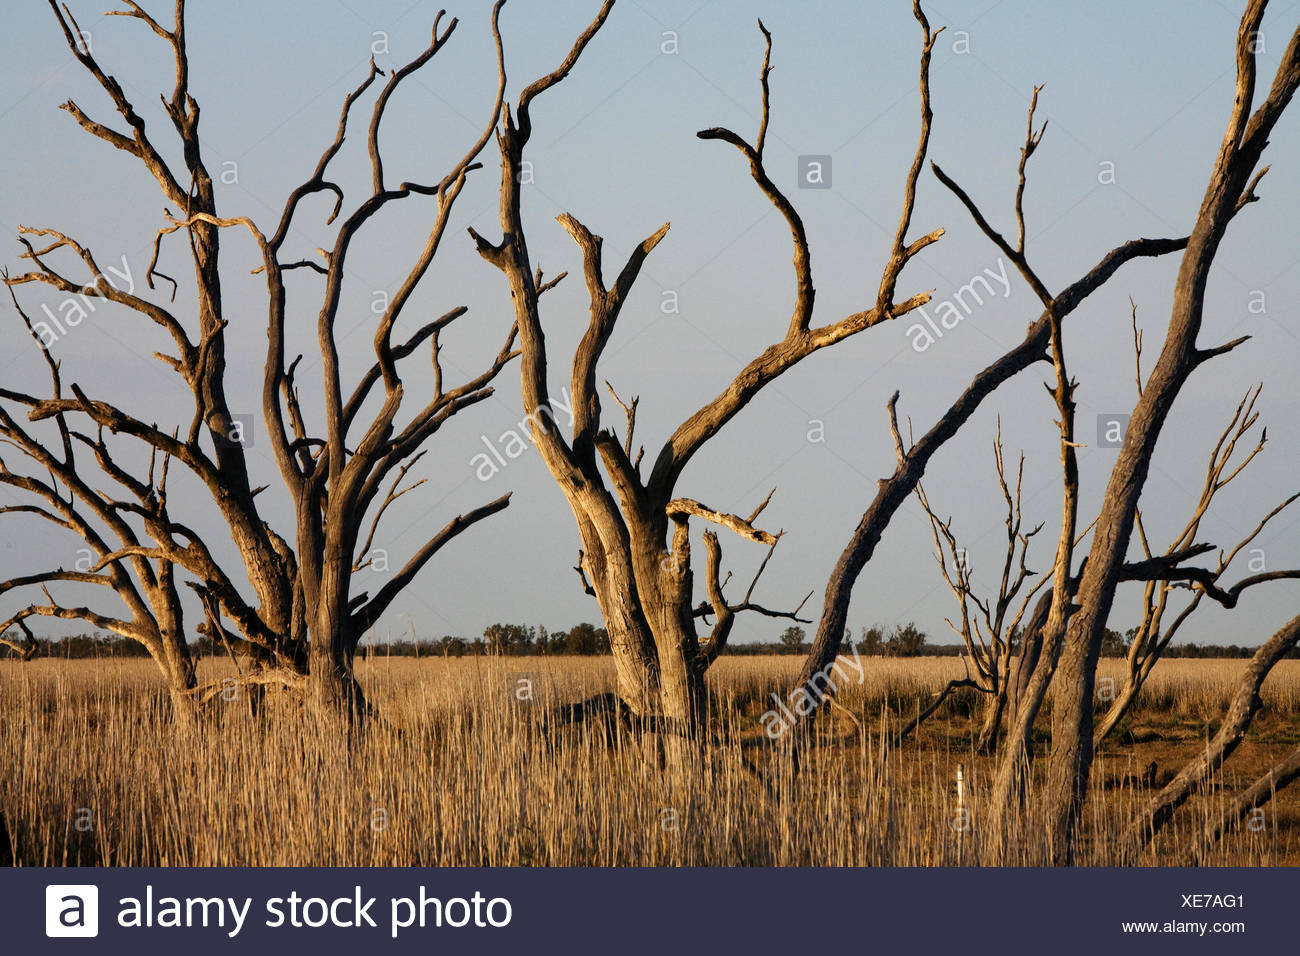 River red gum trees, dead from lack of water due to river diversion. - Stock Image